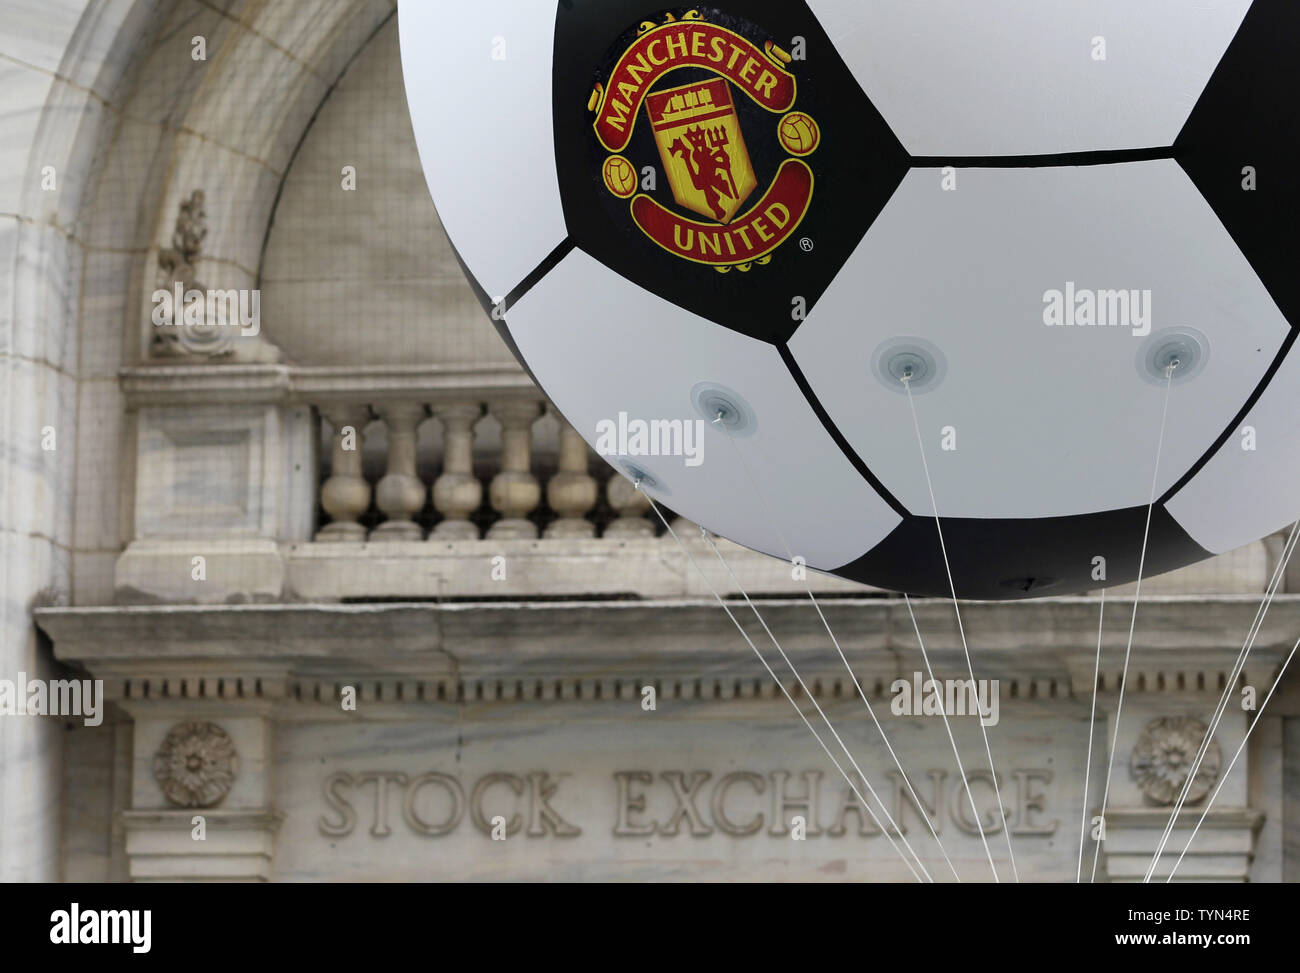 A Soccer Ball With The Manchester United Logo Floats Outside Of The New York Stock Exchange